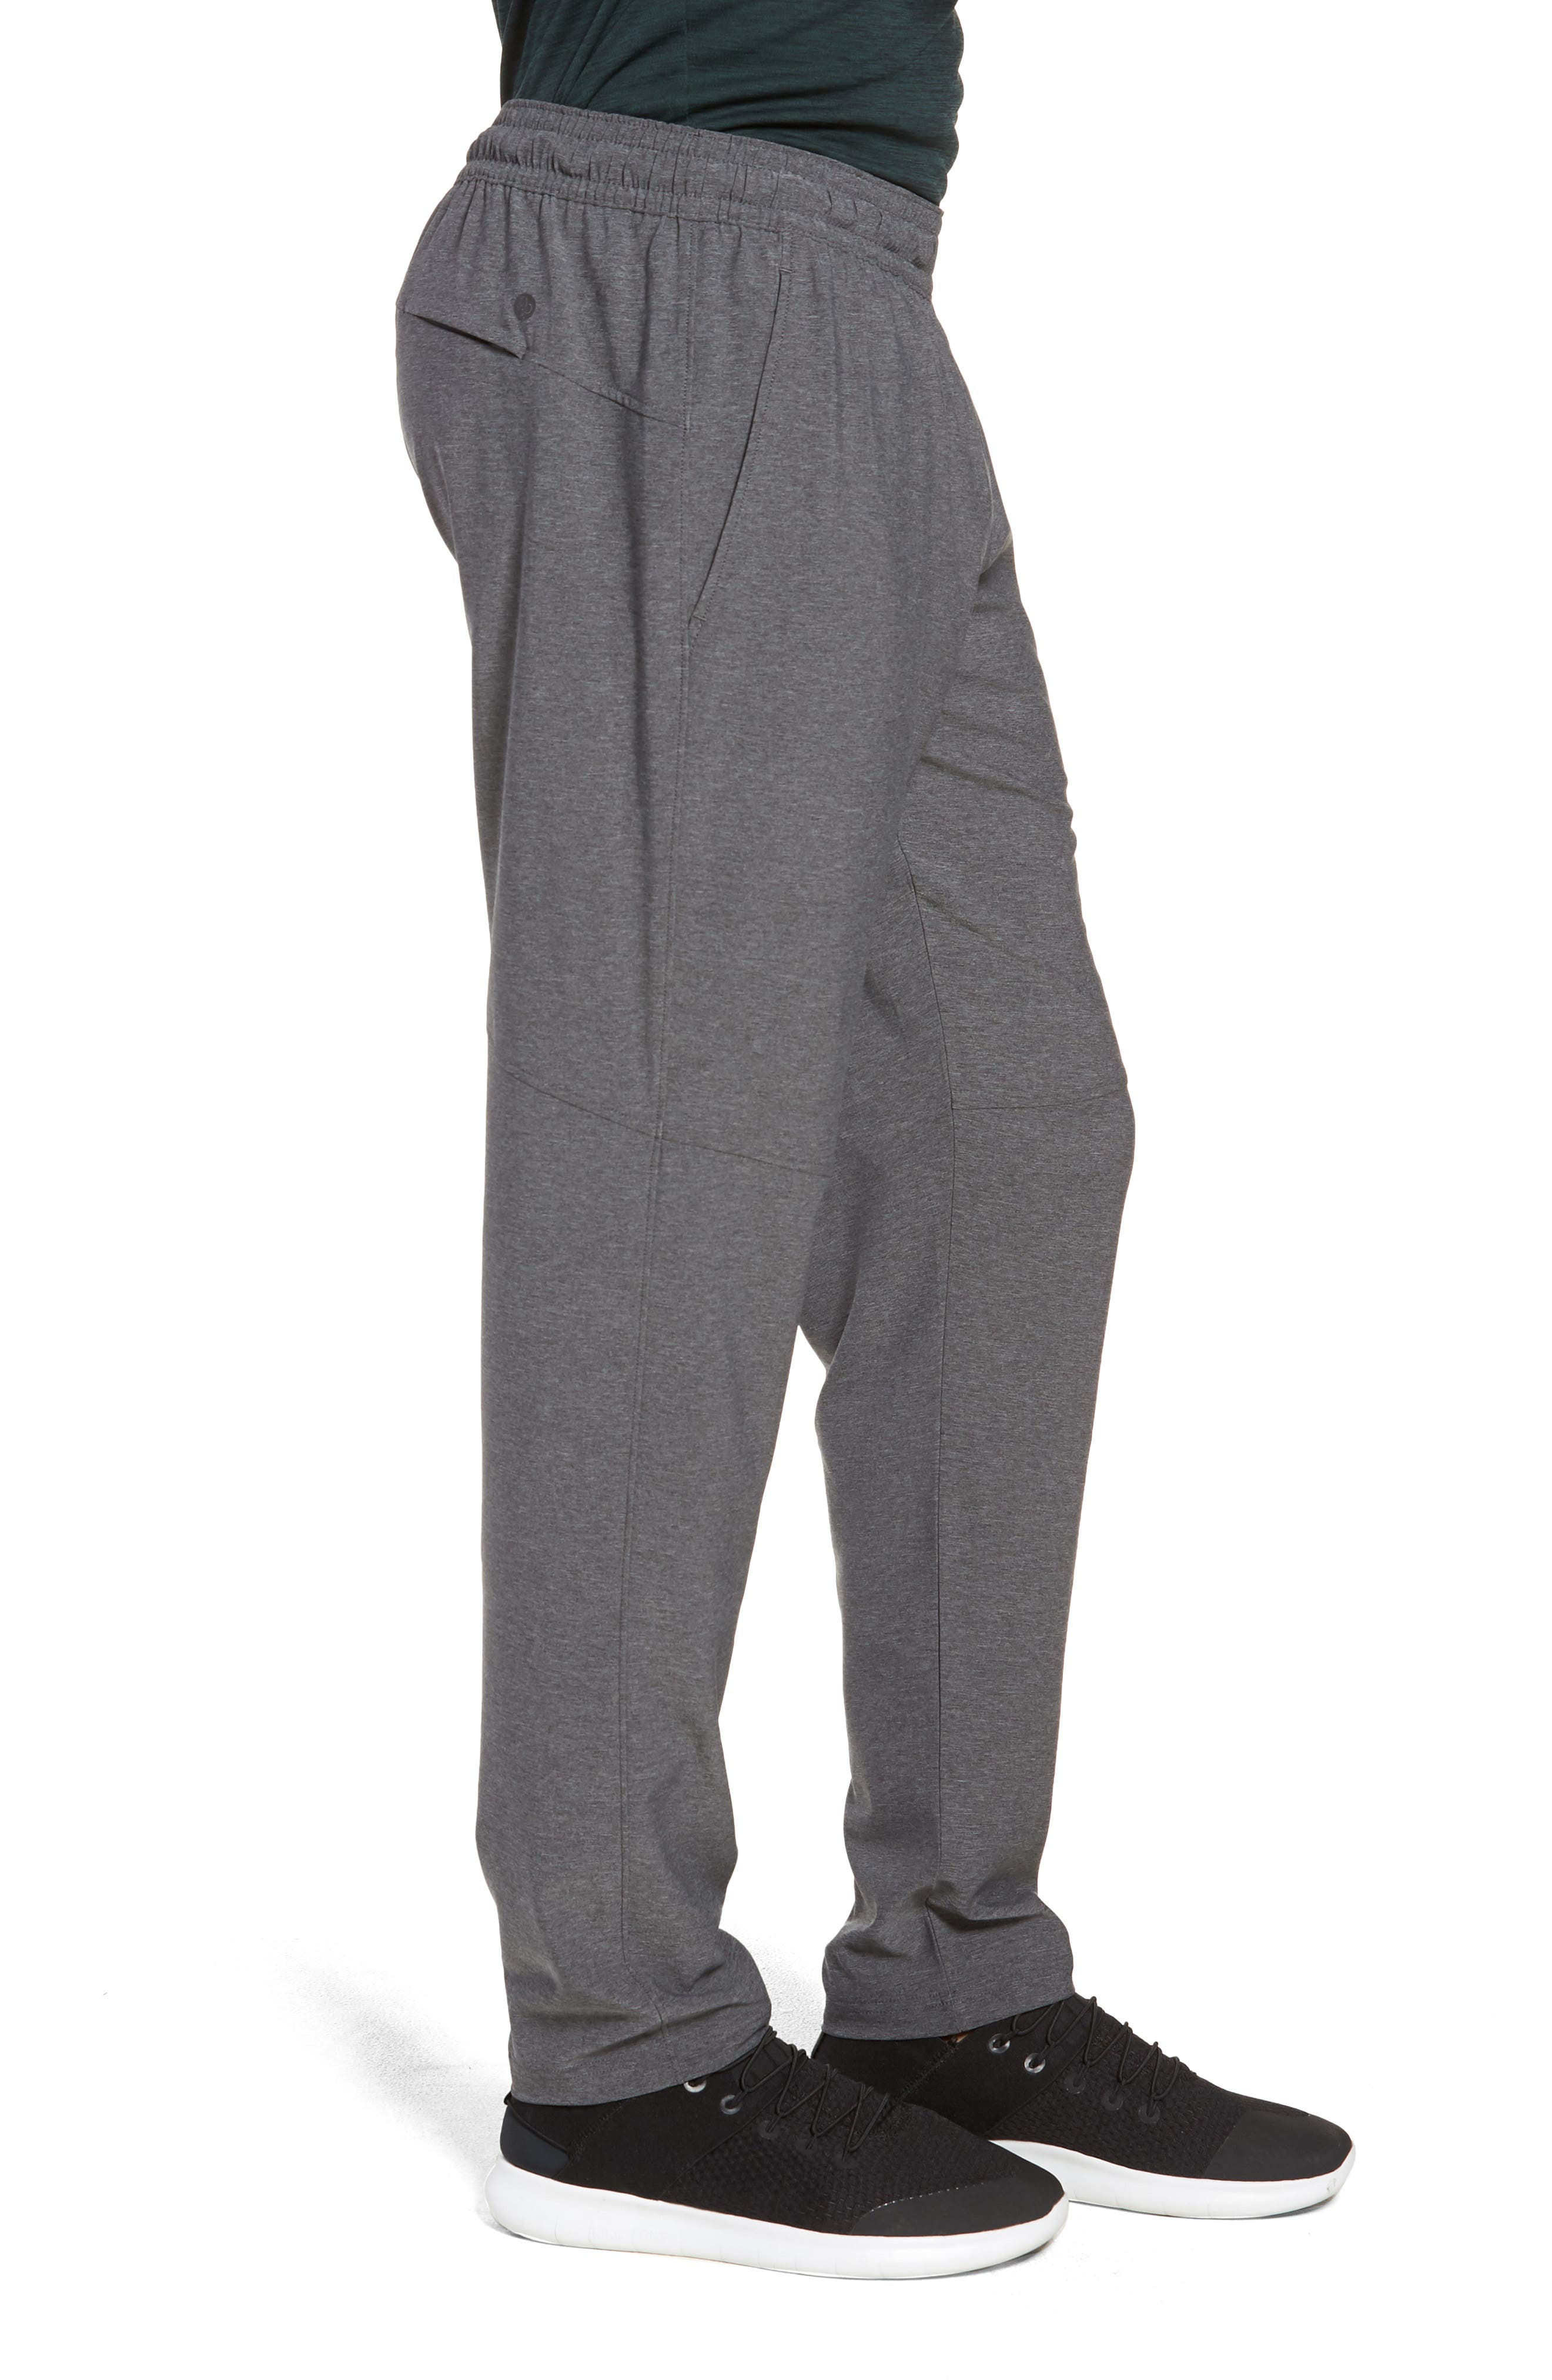 ZELLA, Tapered Stretch Track Pants, Alternate thumbnail 4, color, GREY OBSIDIAN MELANGE